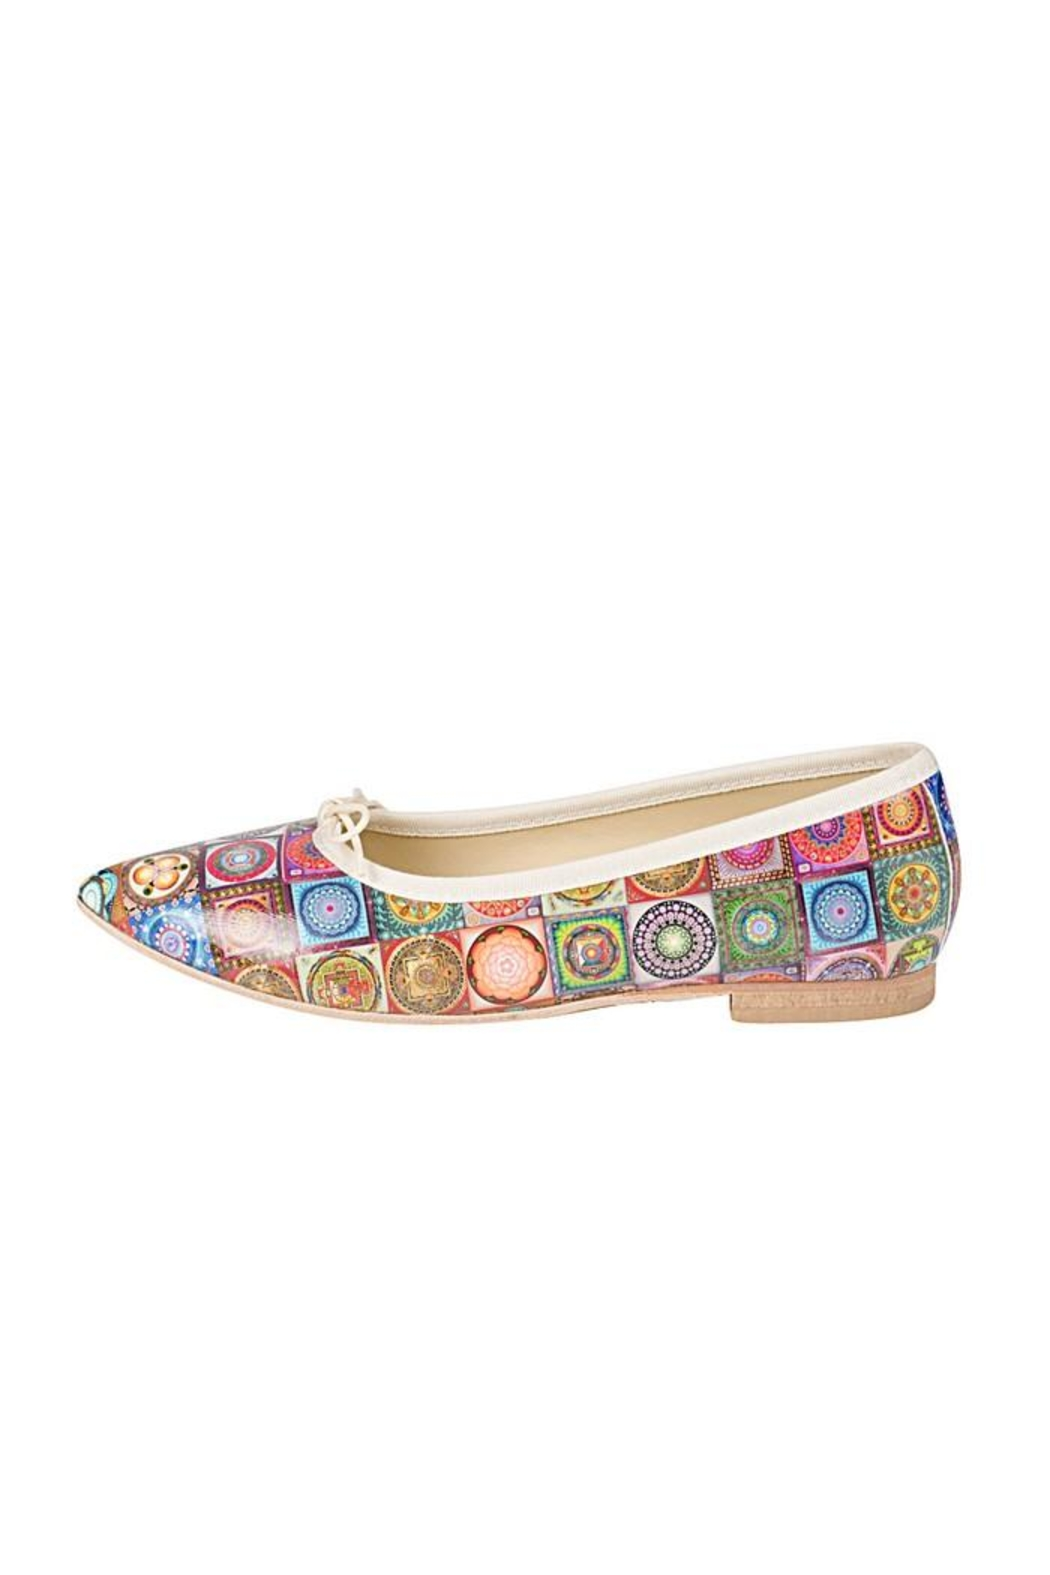 Misano Multicoloured-Tile Ballerina Flats - Front Cropped Image